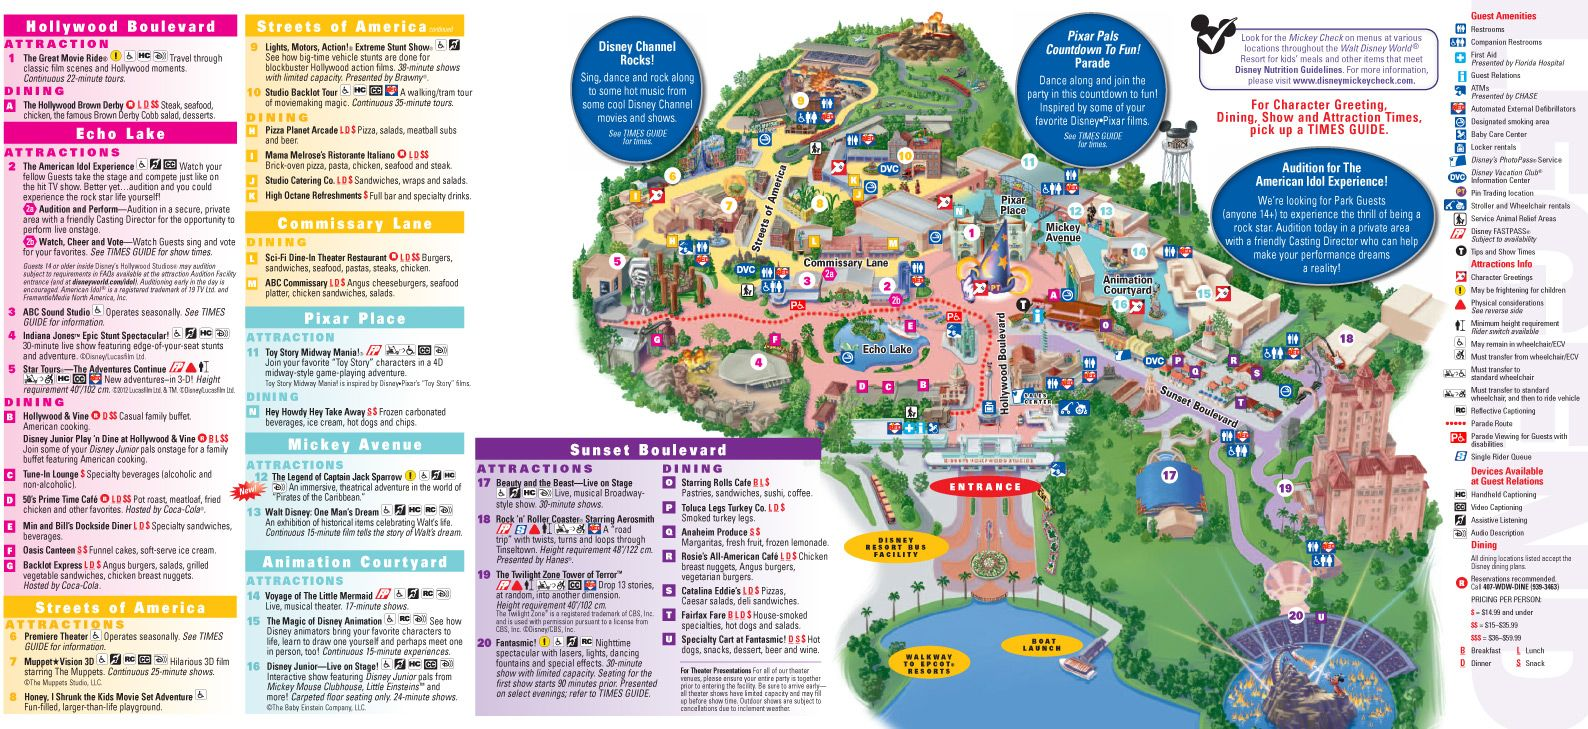 2013 Hollywood Studios Map | Trip to Disney in 2019 | Disney world on